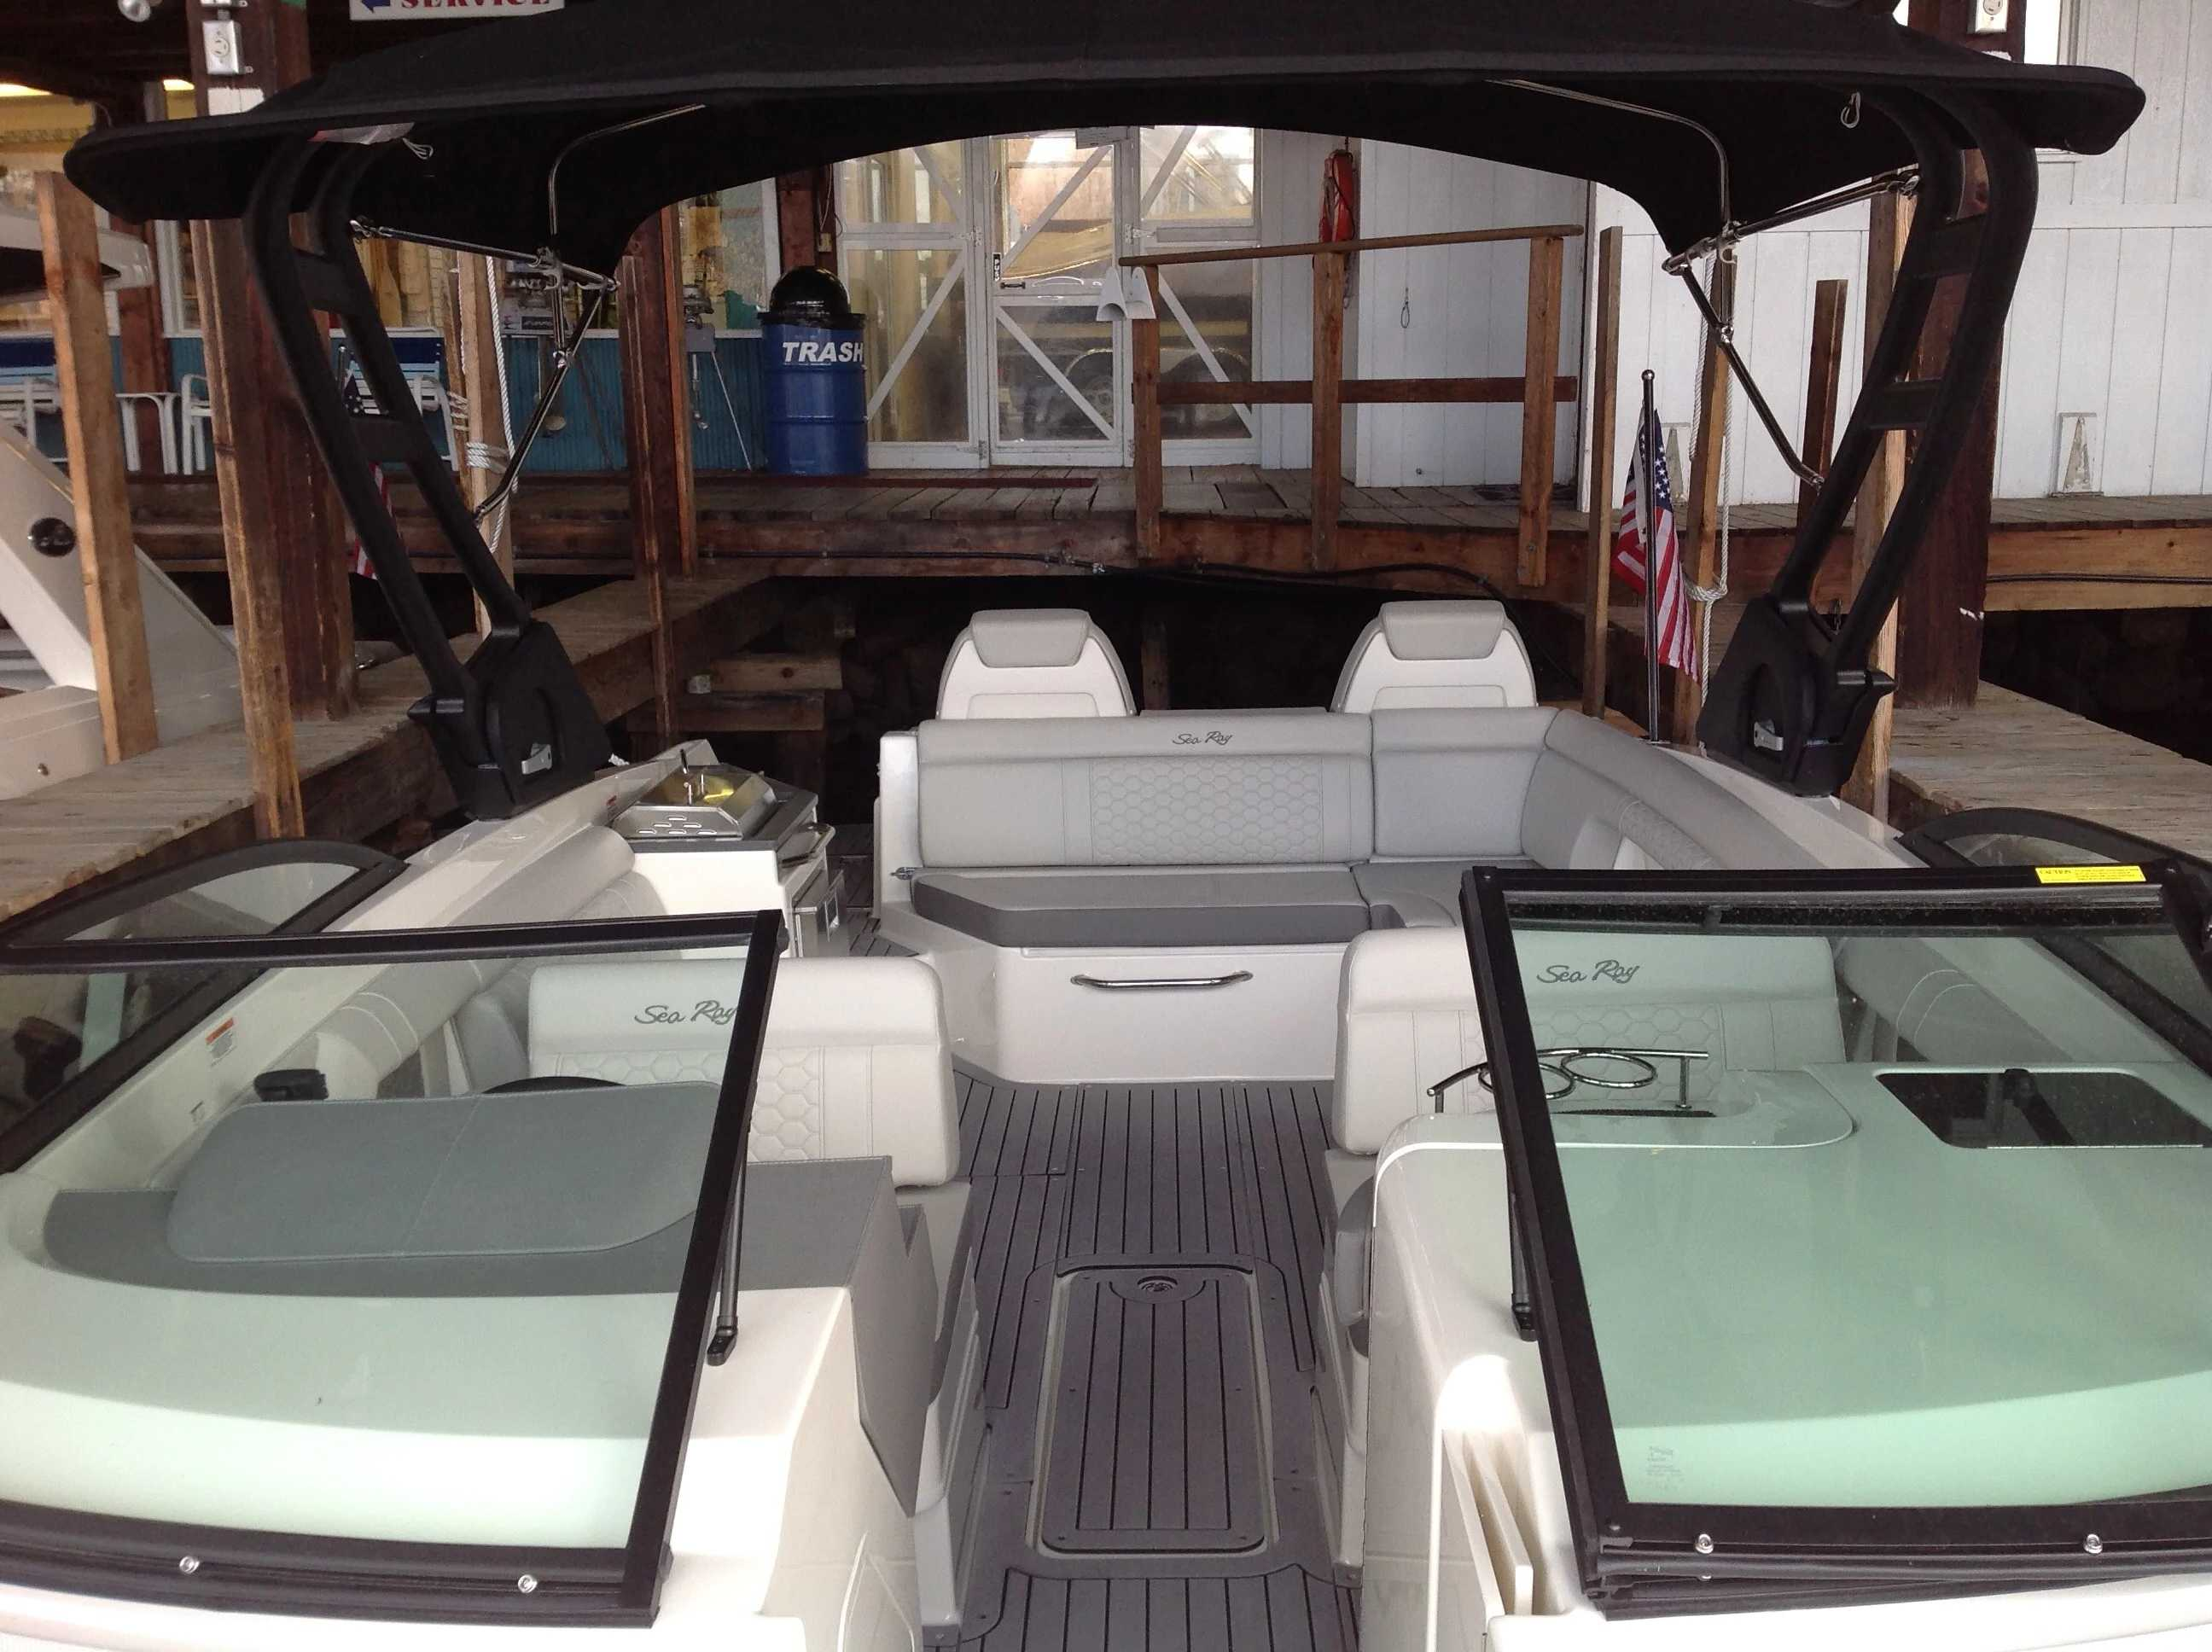 2021 Sea Ray boat for sale, model of the boat is 270 sdx & Image # 3 of 17